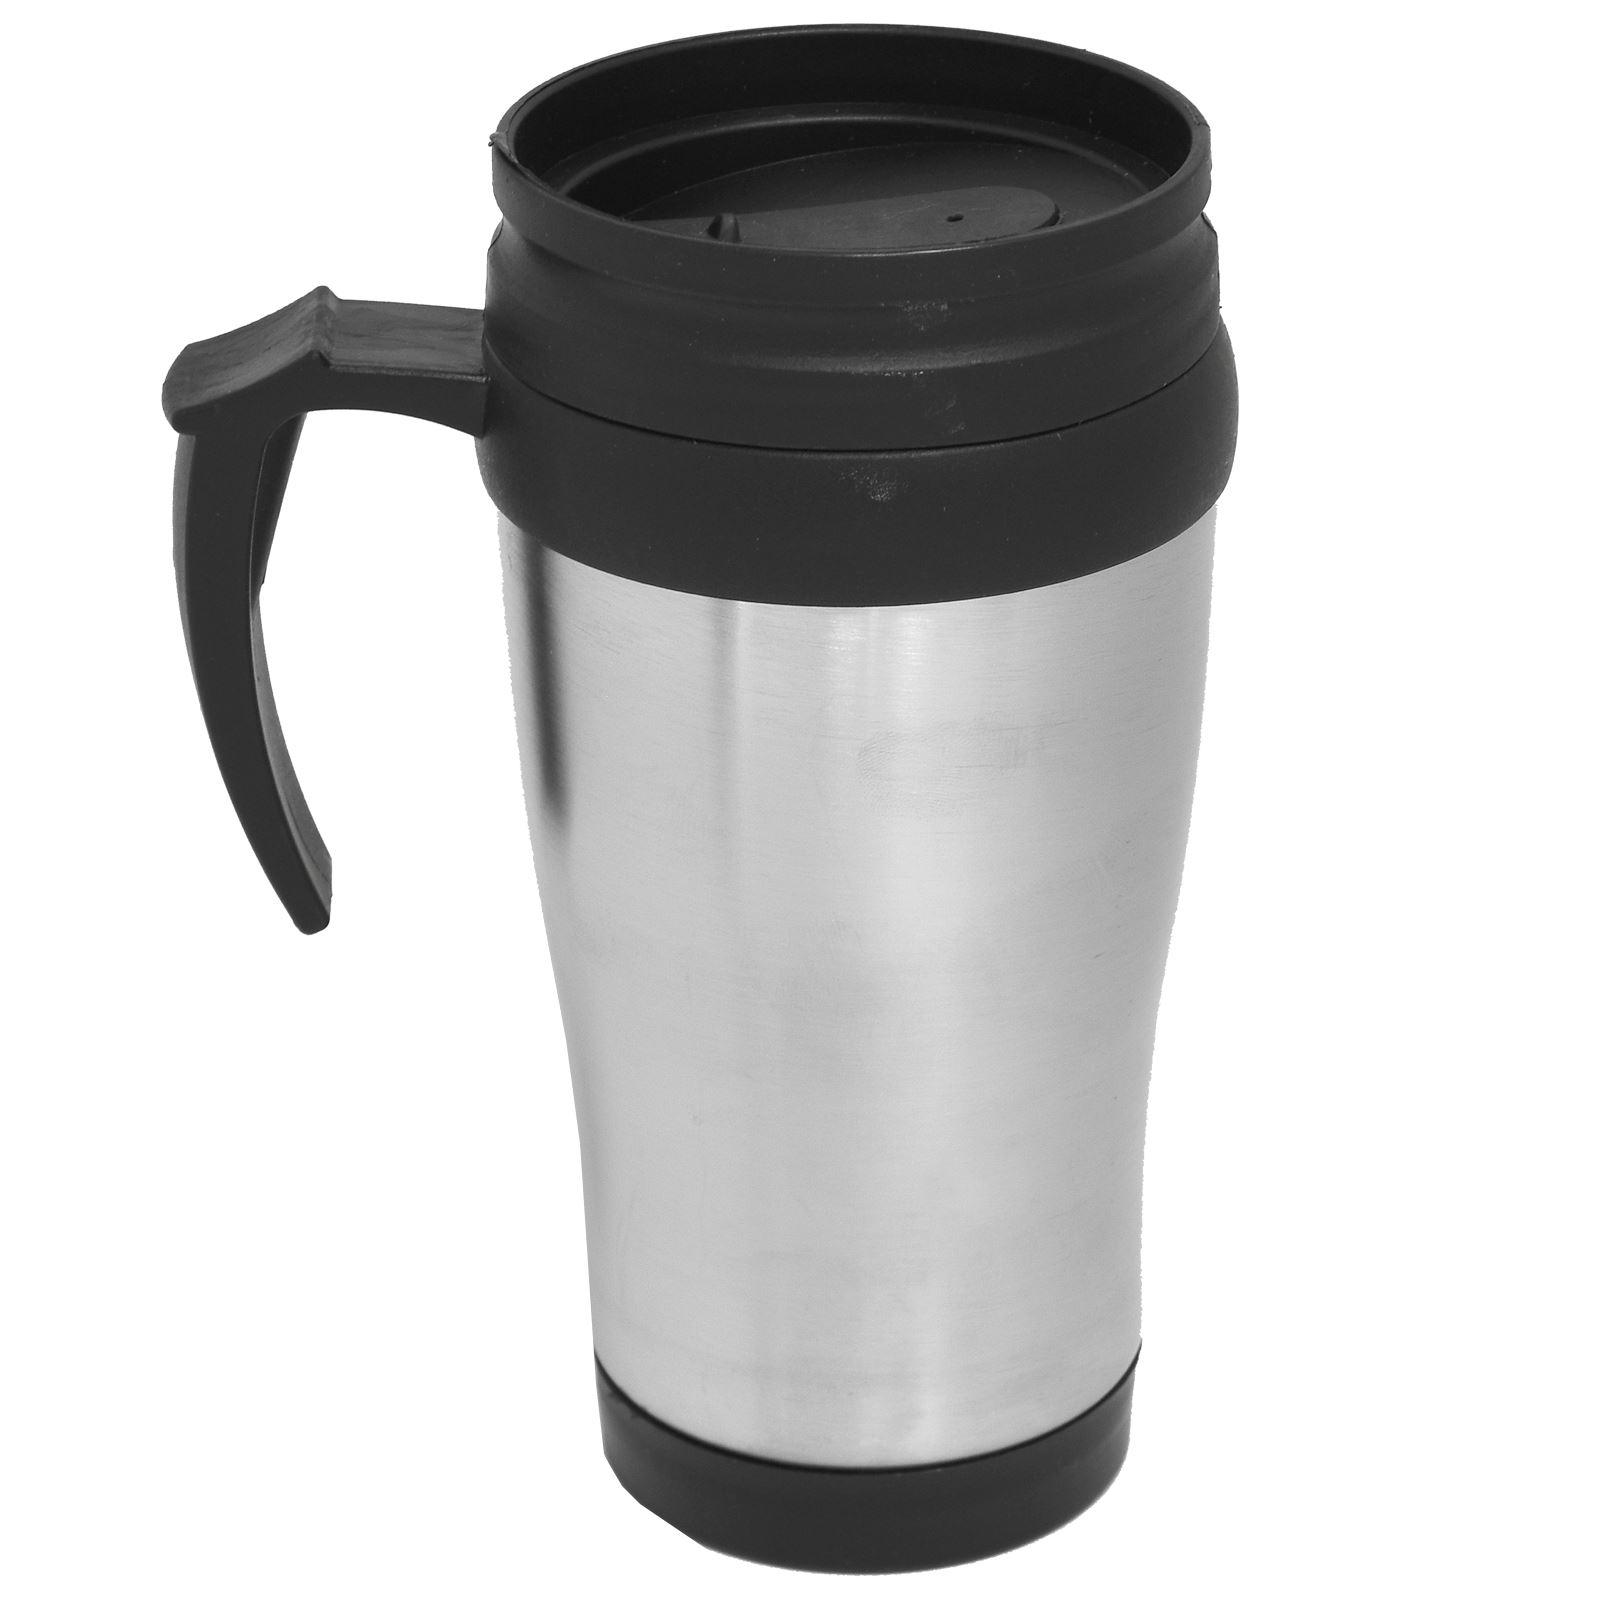 450ml travel mug stainless steel non spill thermal insulated tea coffee cup ebay. Black Bedroom Furniture Sets. Home Design Ideas